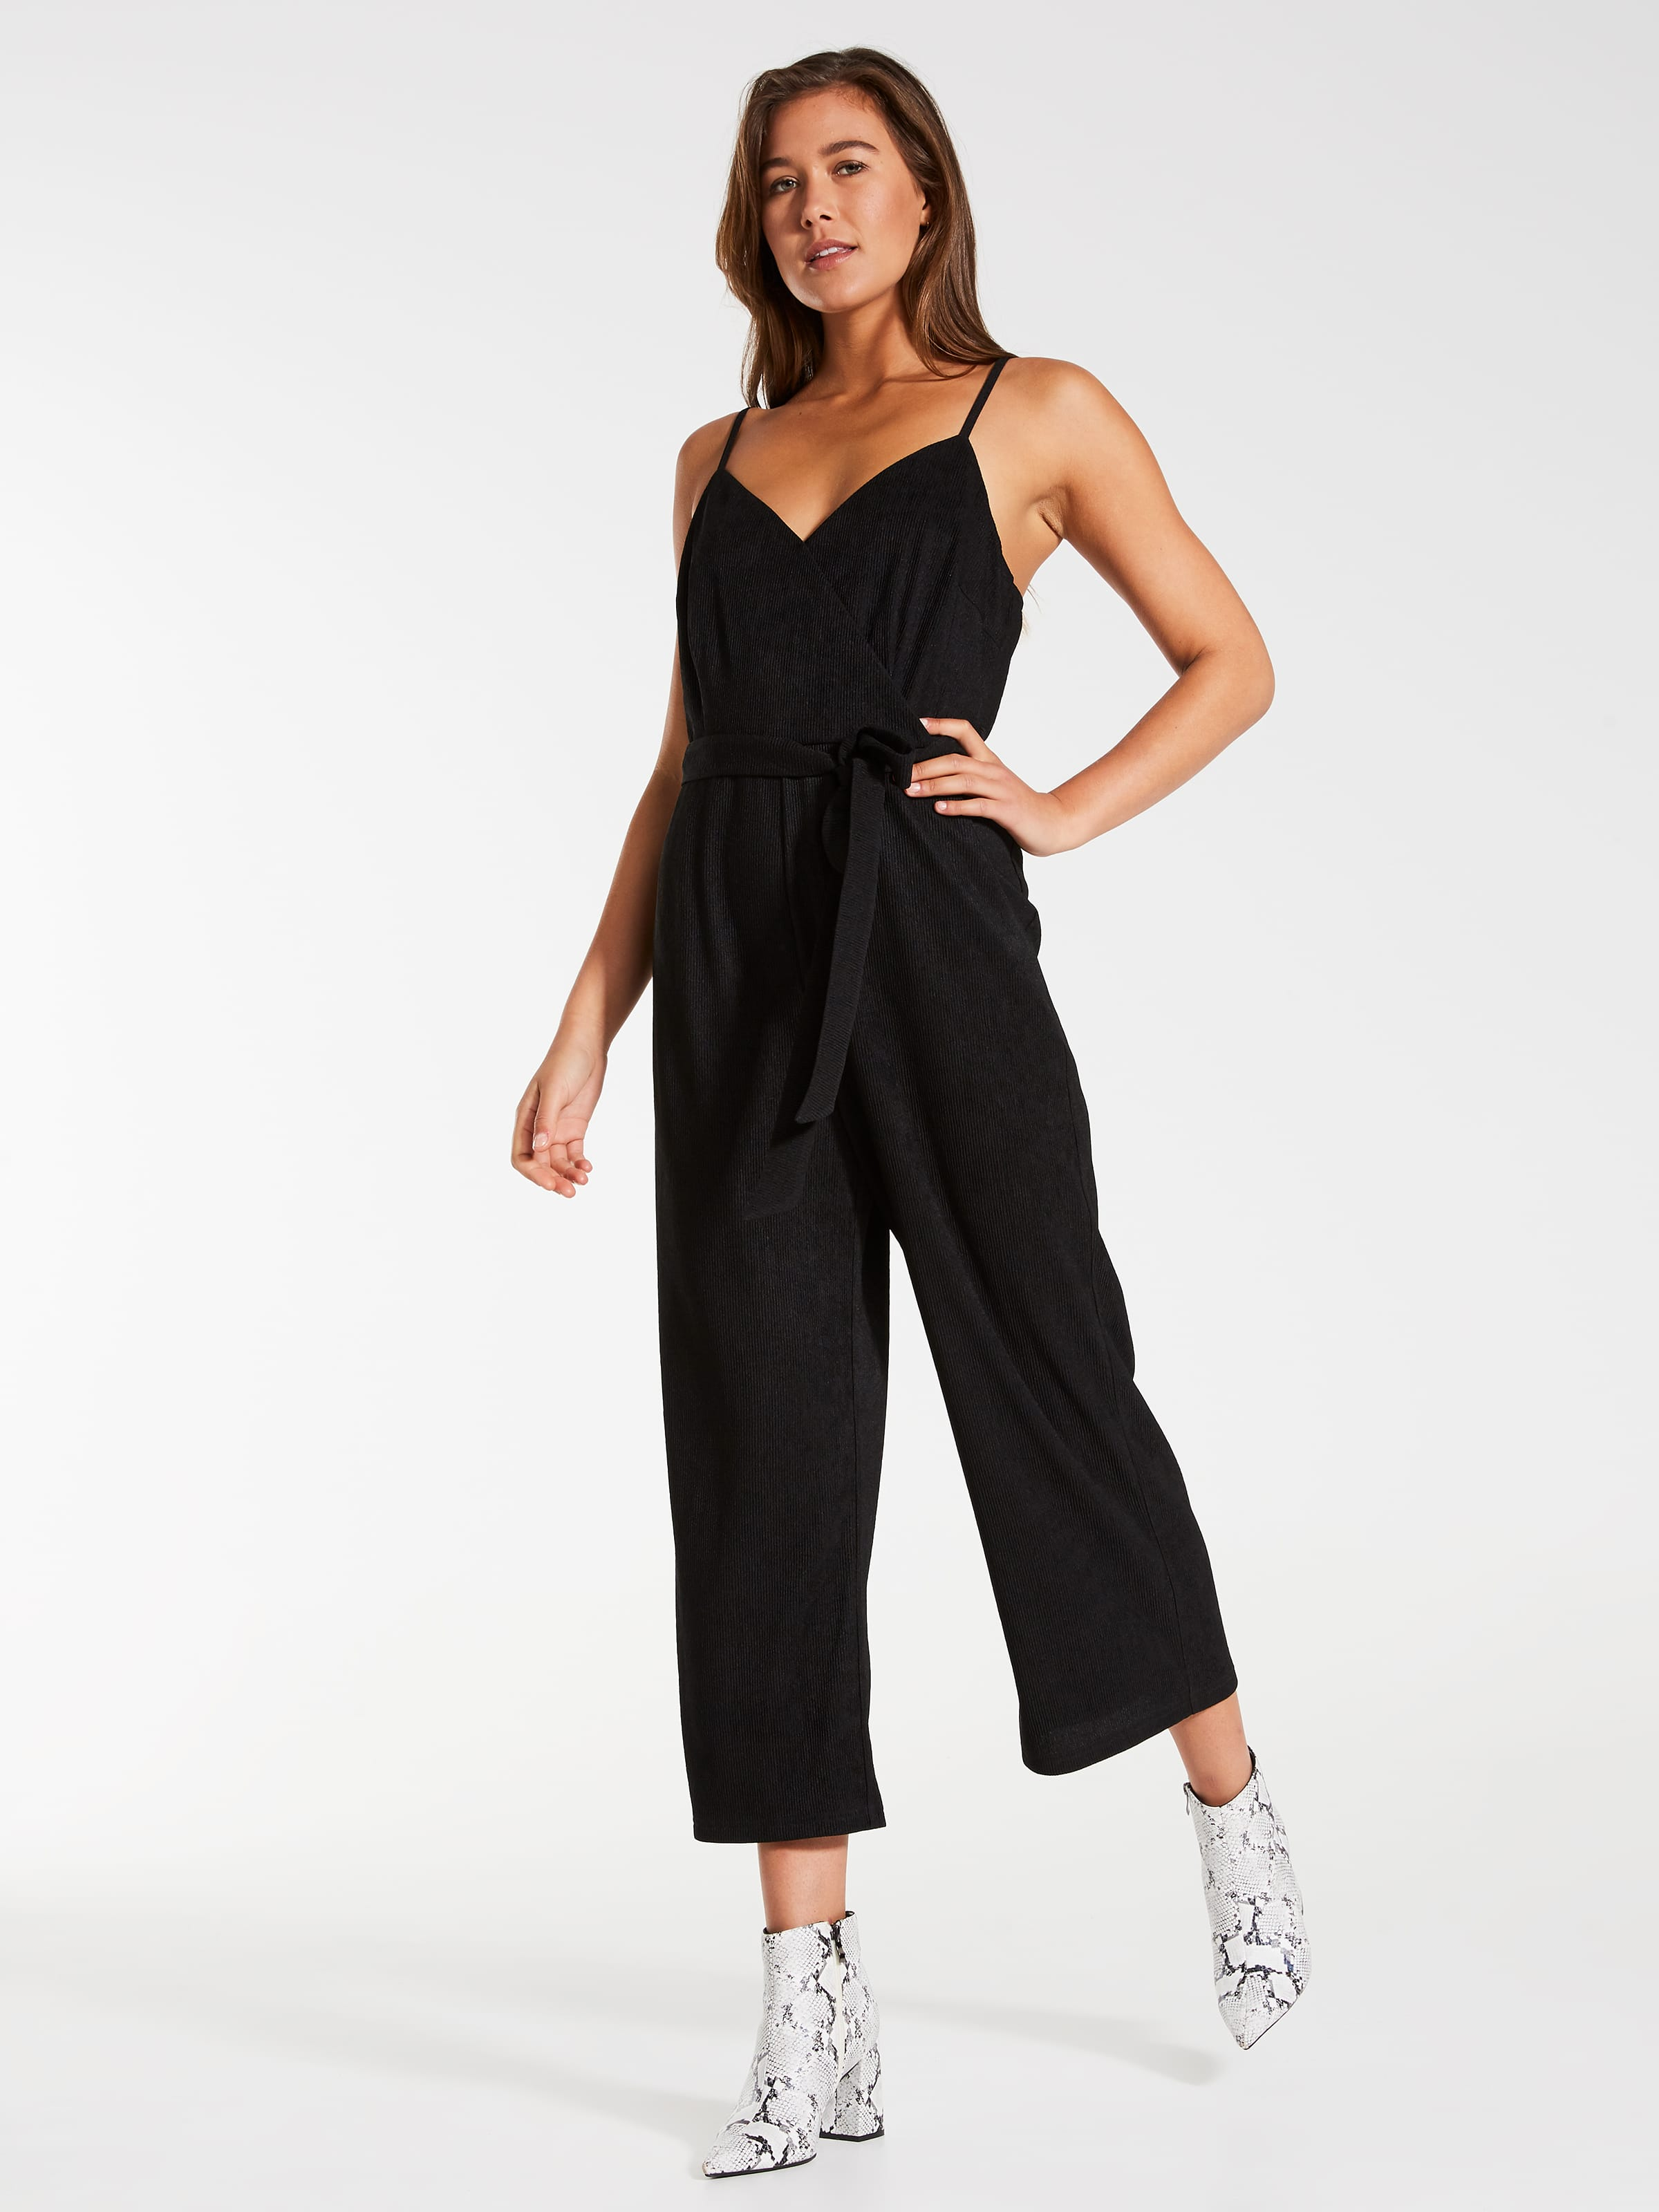 New Knit Wrap Culotte Jumpsuit